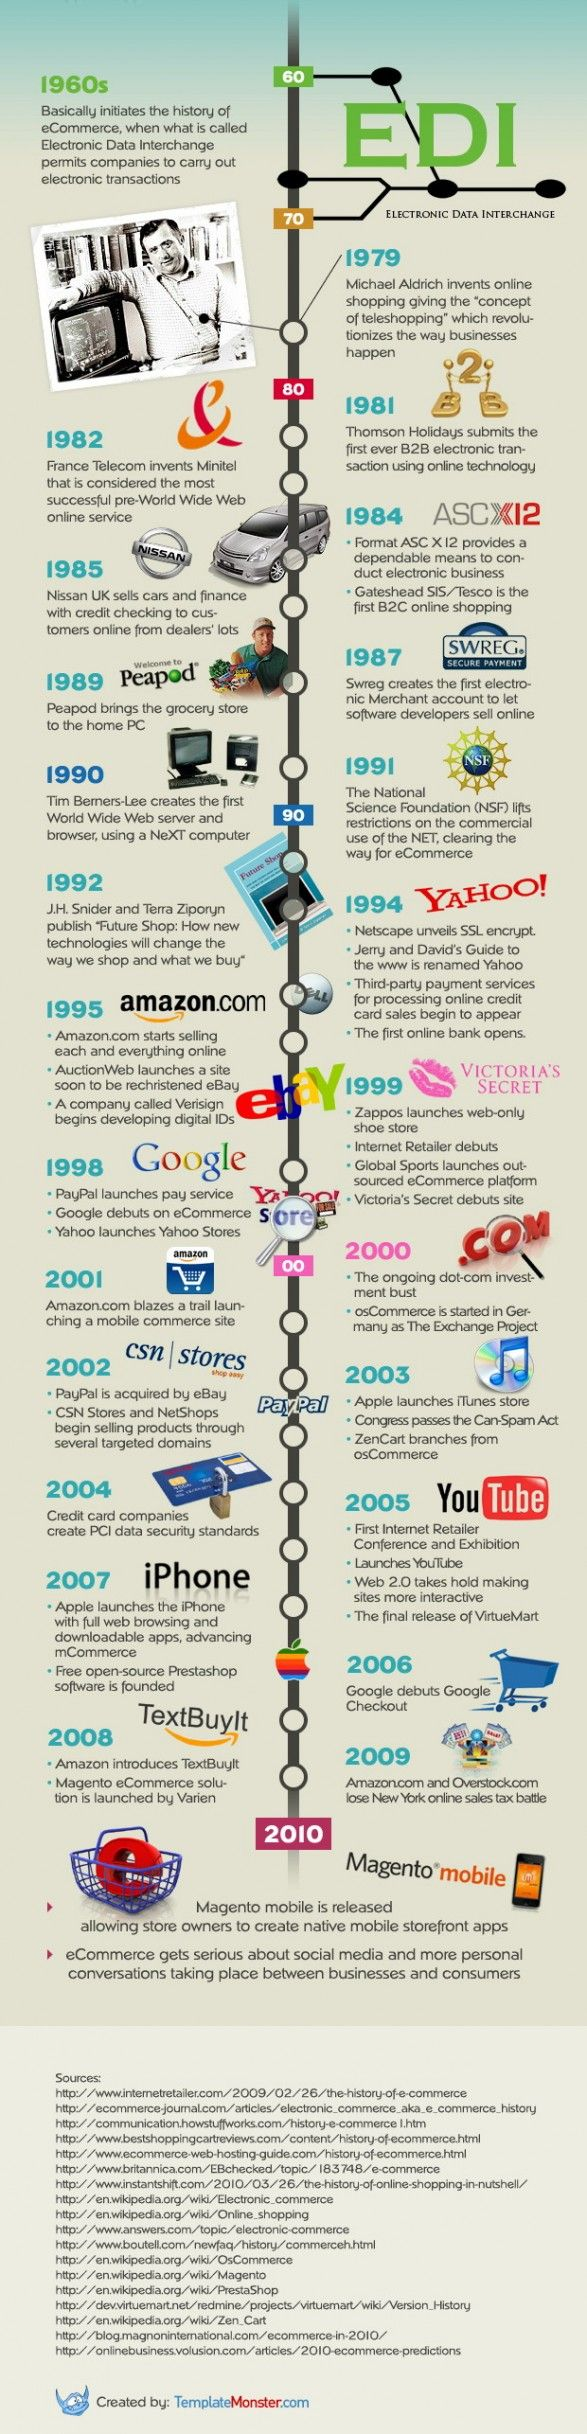 The History of eCommerce